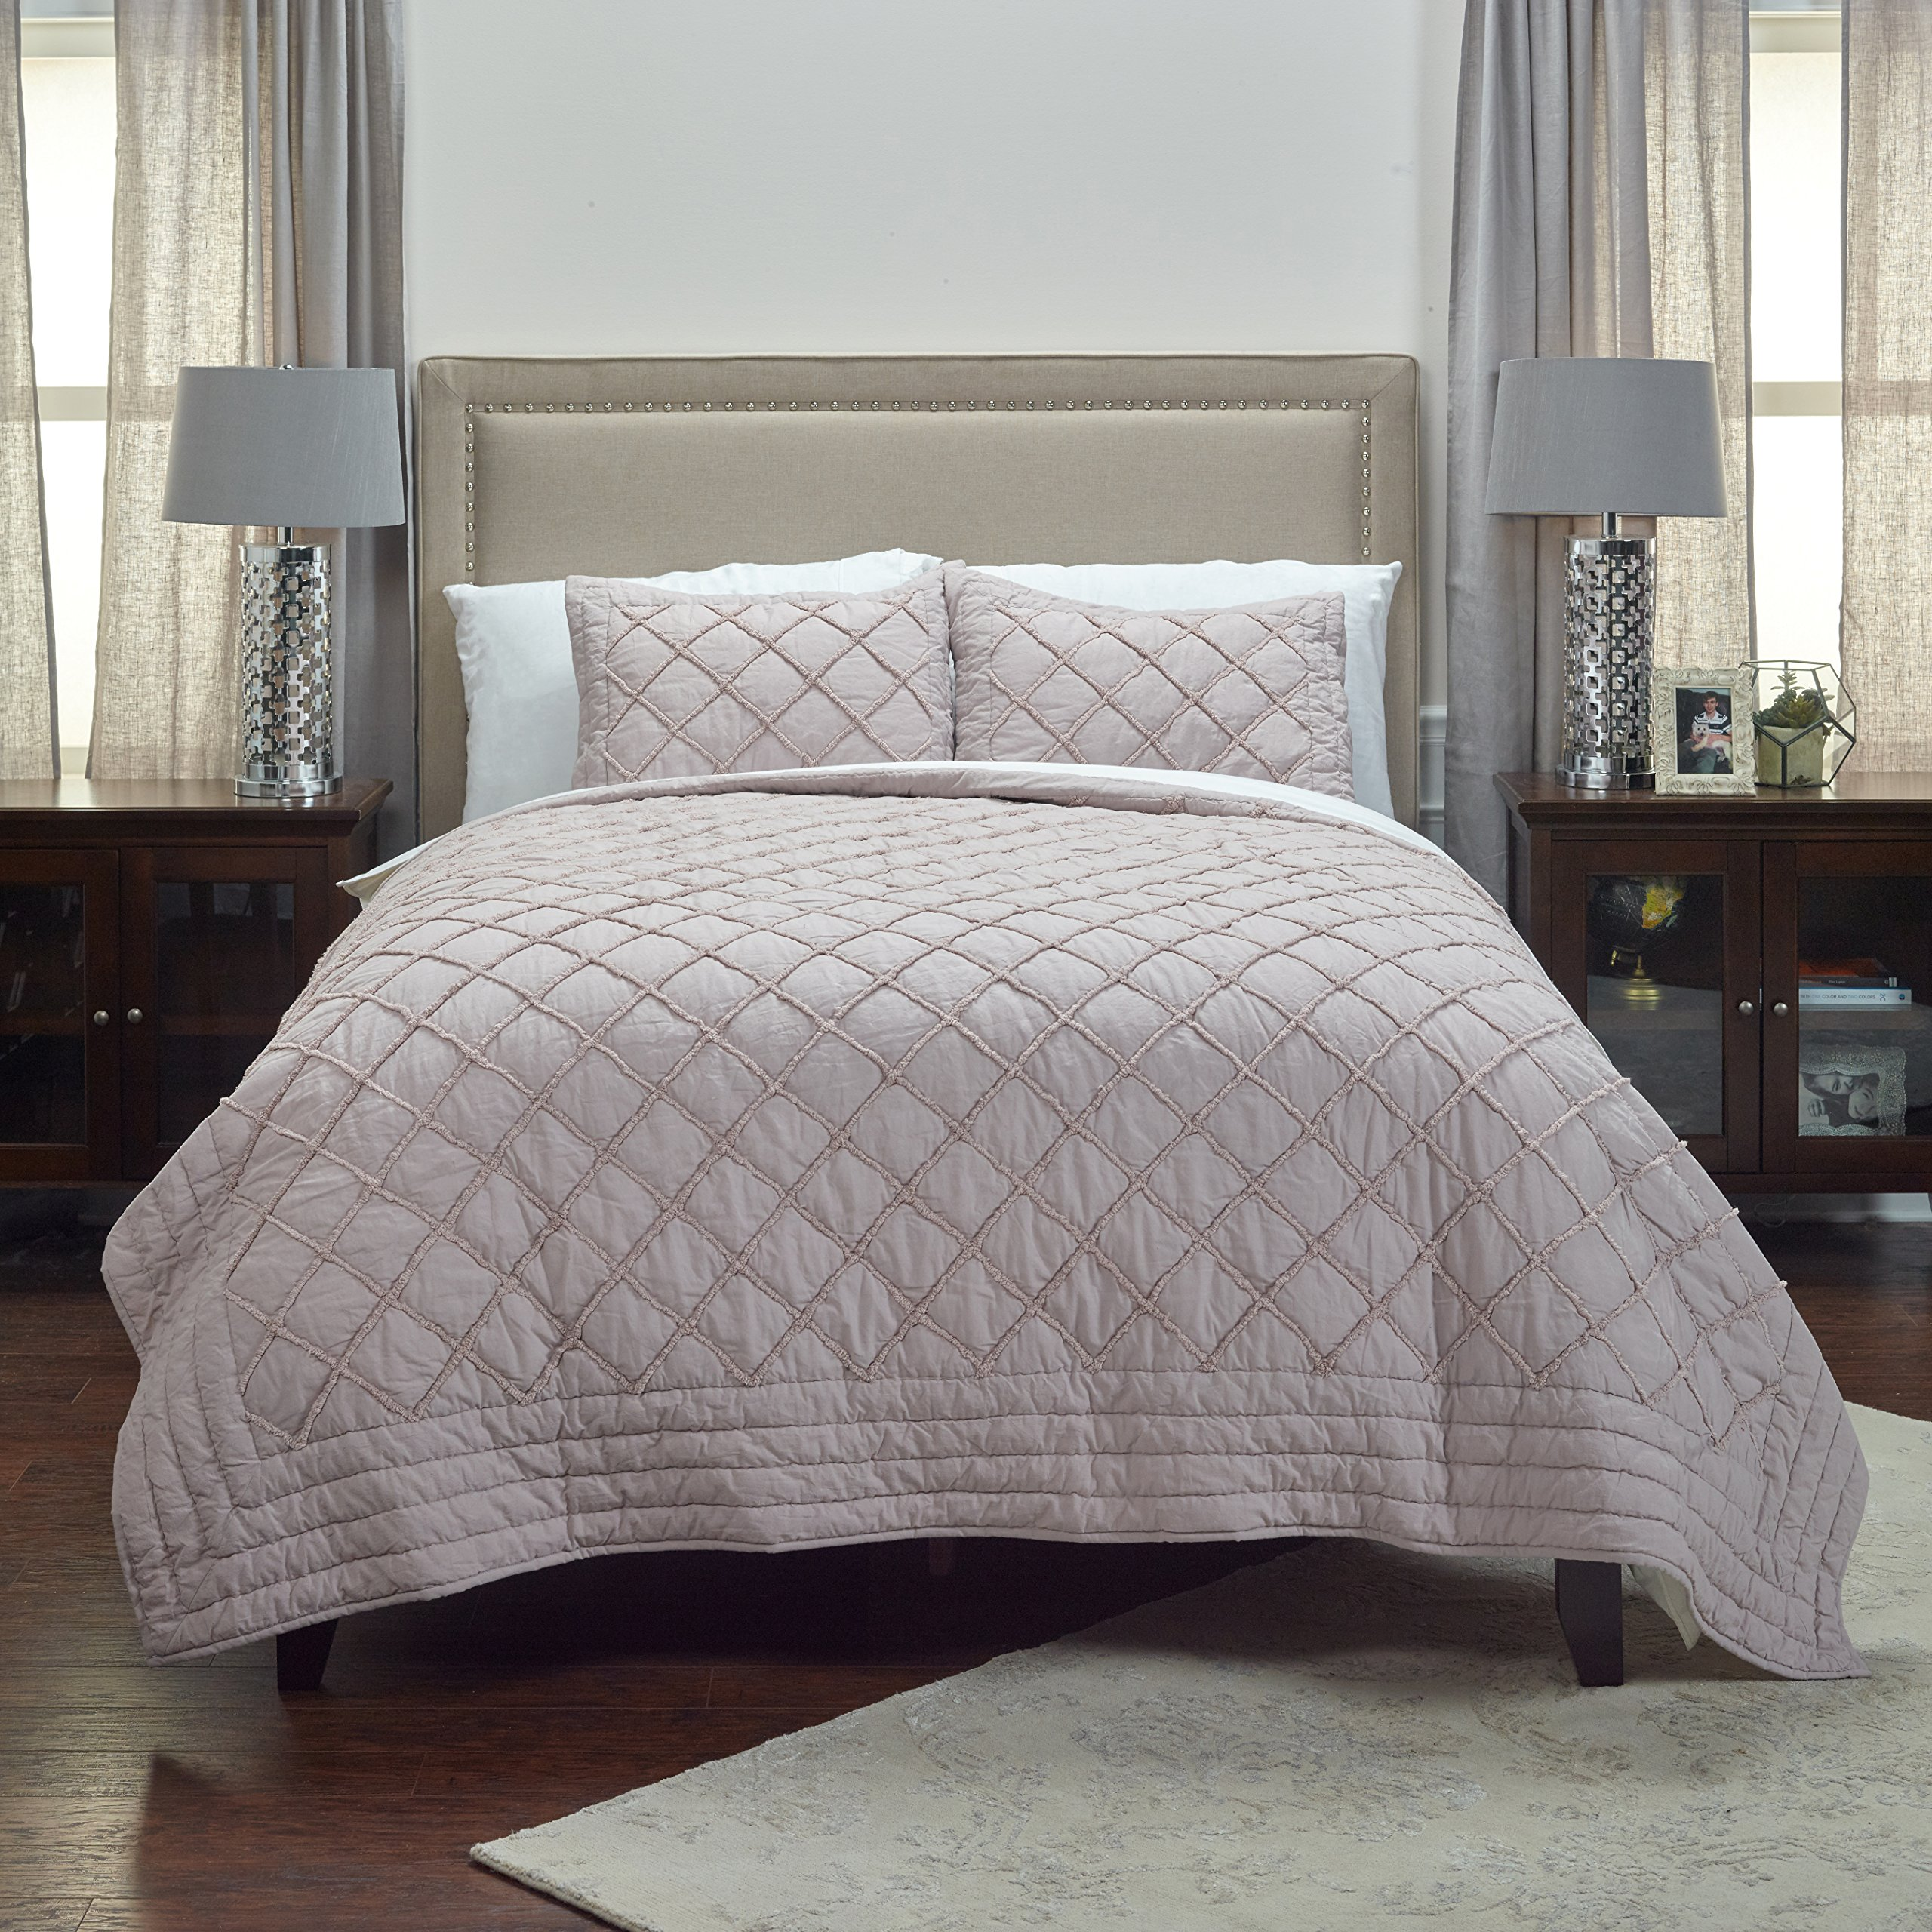 Rizzy Home QLTBQ4235BS001692 Quilt, Blossom, King